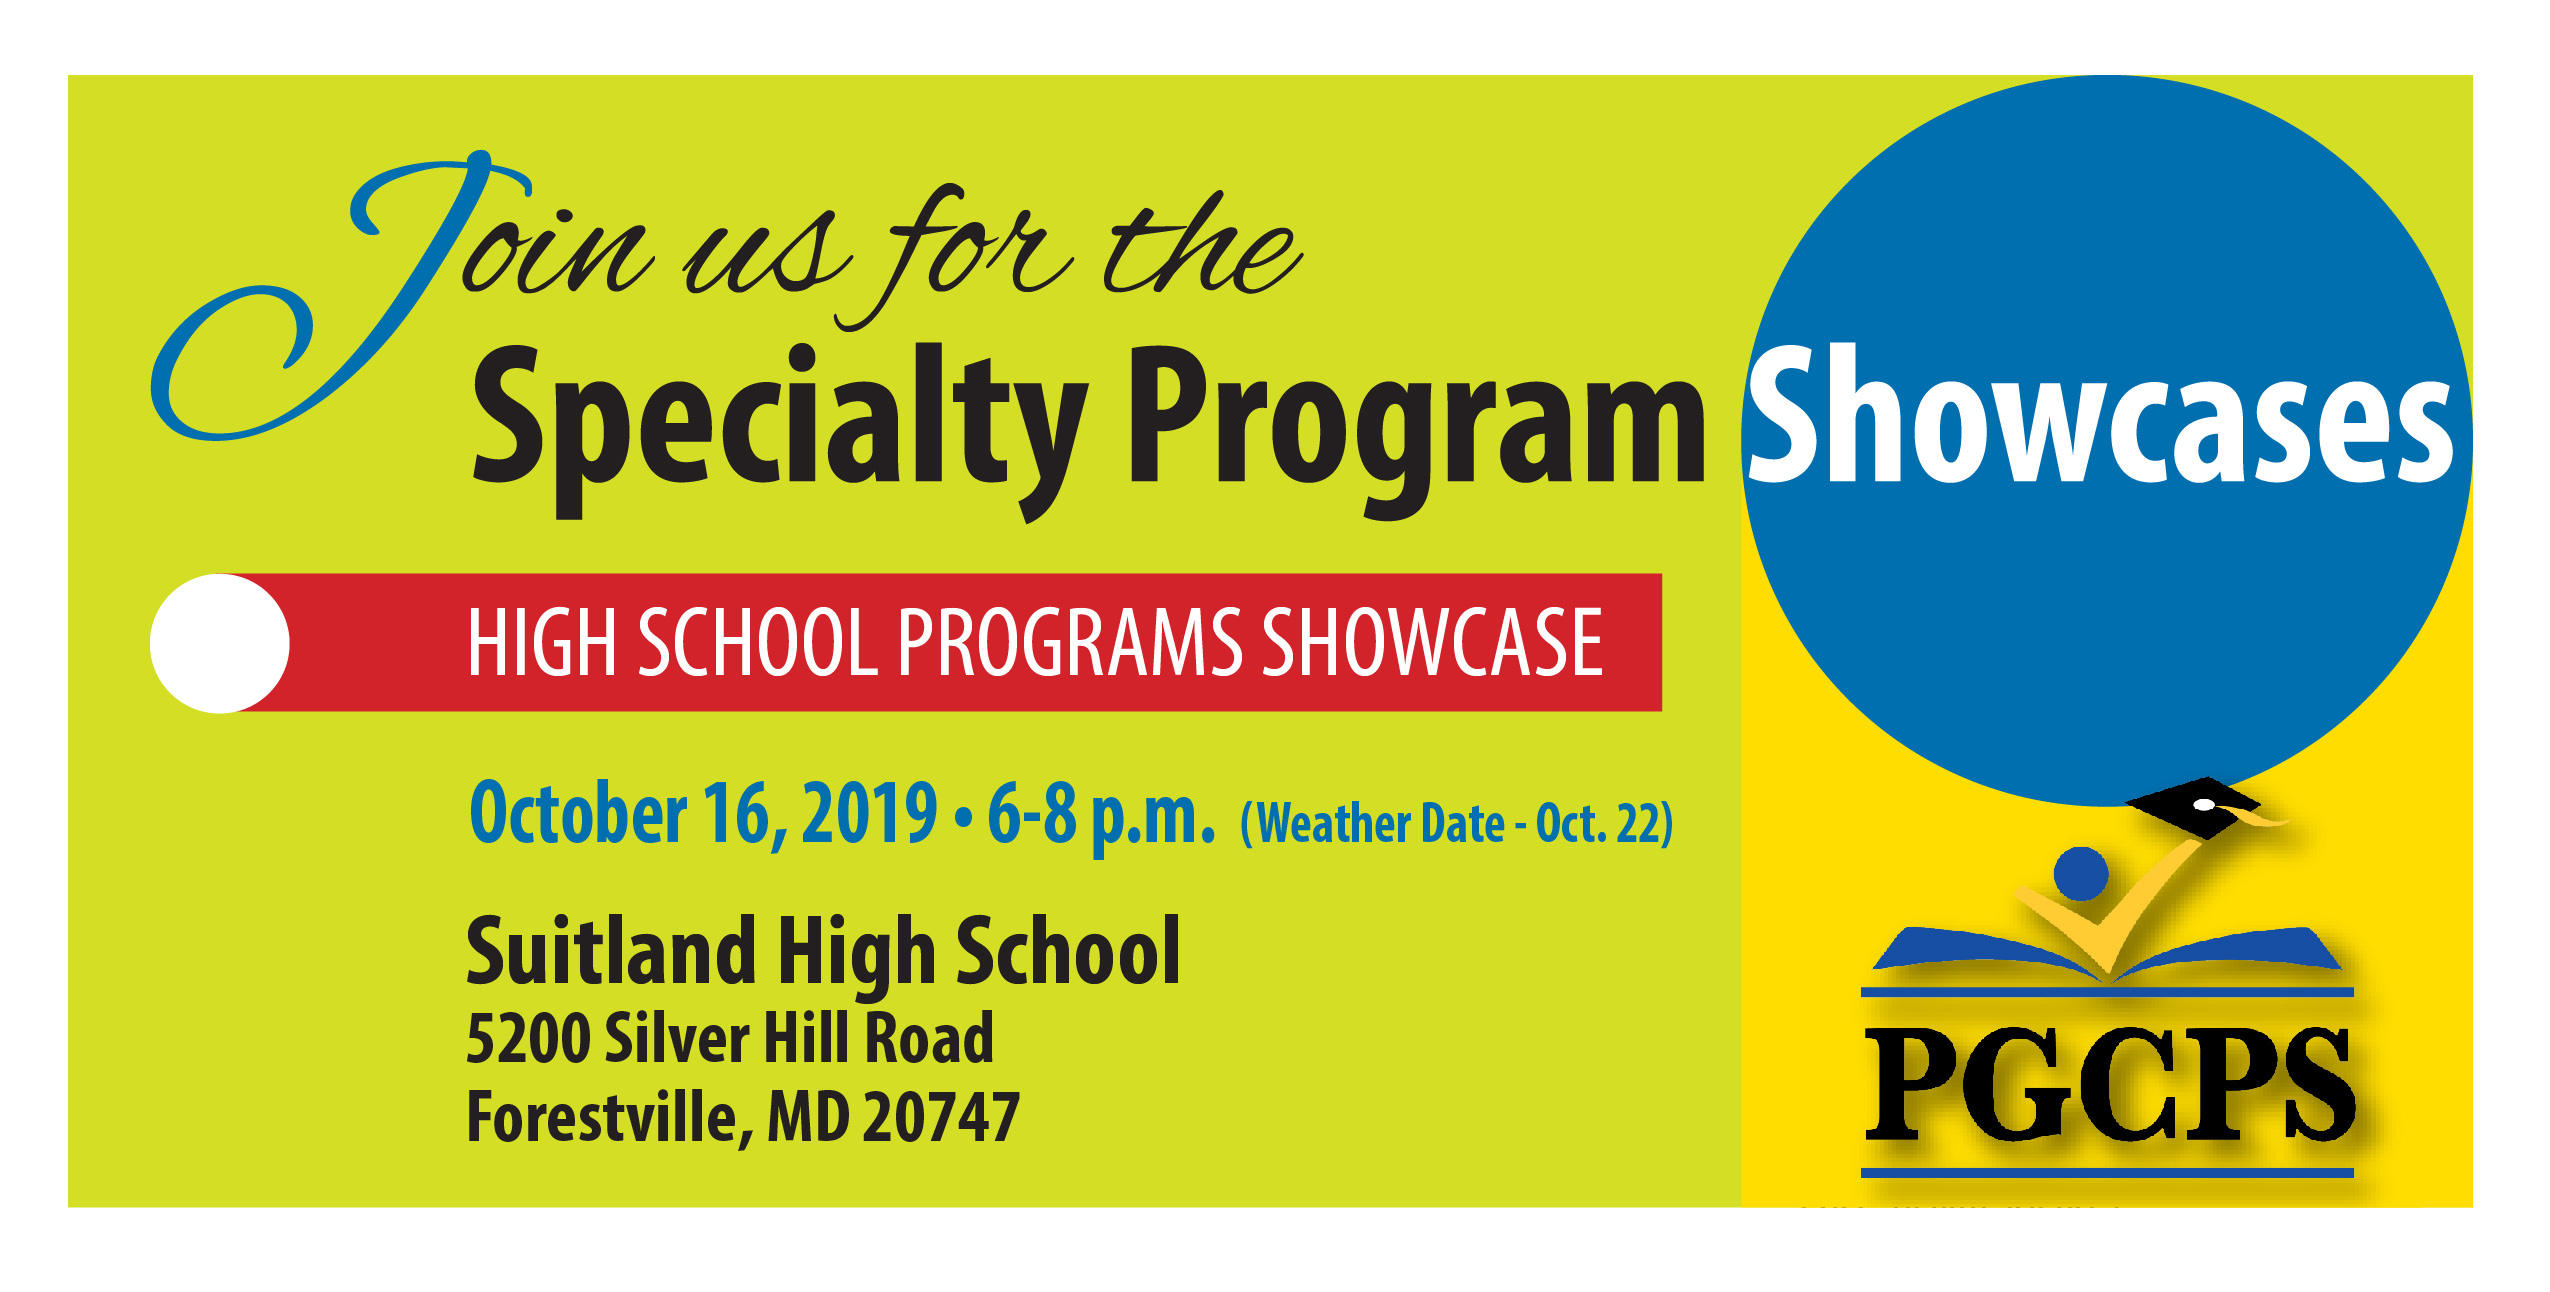 PGCPS Specialty Program Showcase